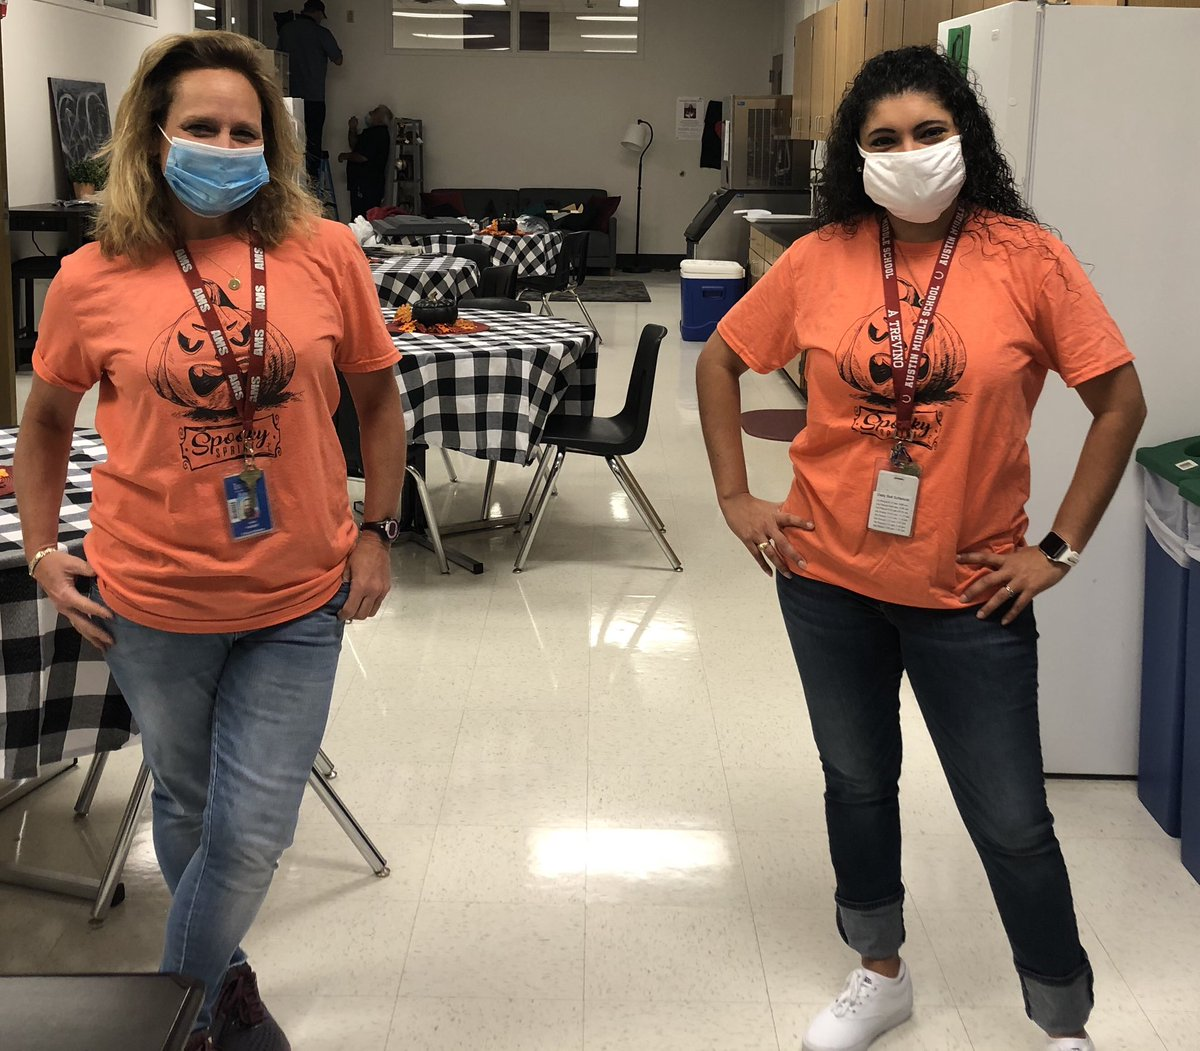 United against drugs...and twinning! @MsKanerAMS @Austin_Broncos #amspower #broncostrong #bettertogther https://t.co/tVWx5Px2eW